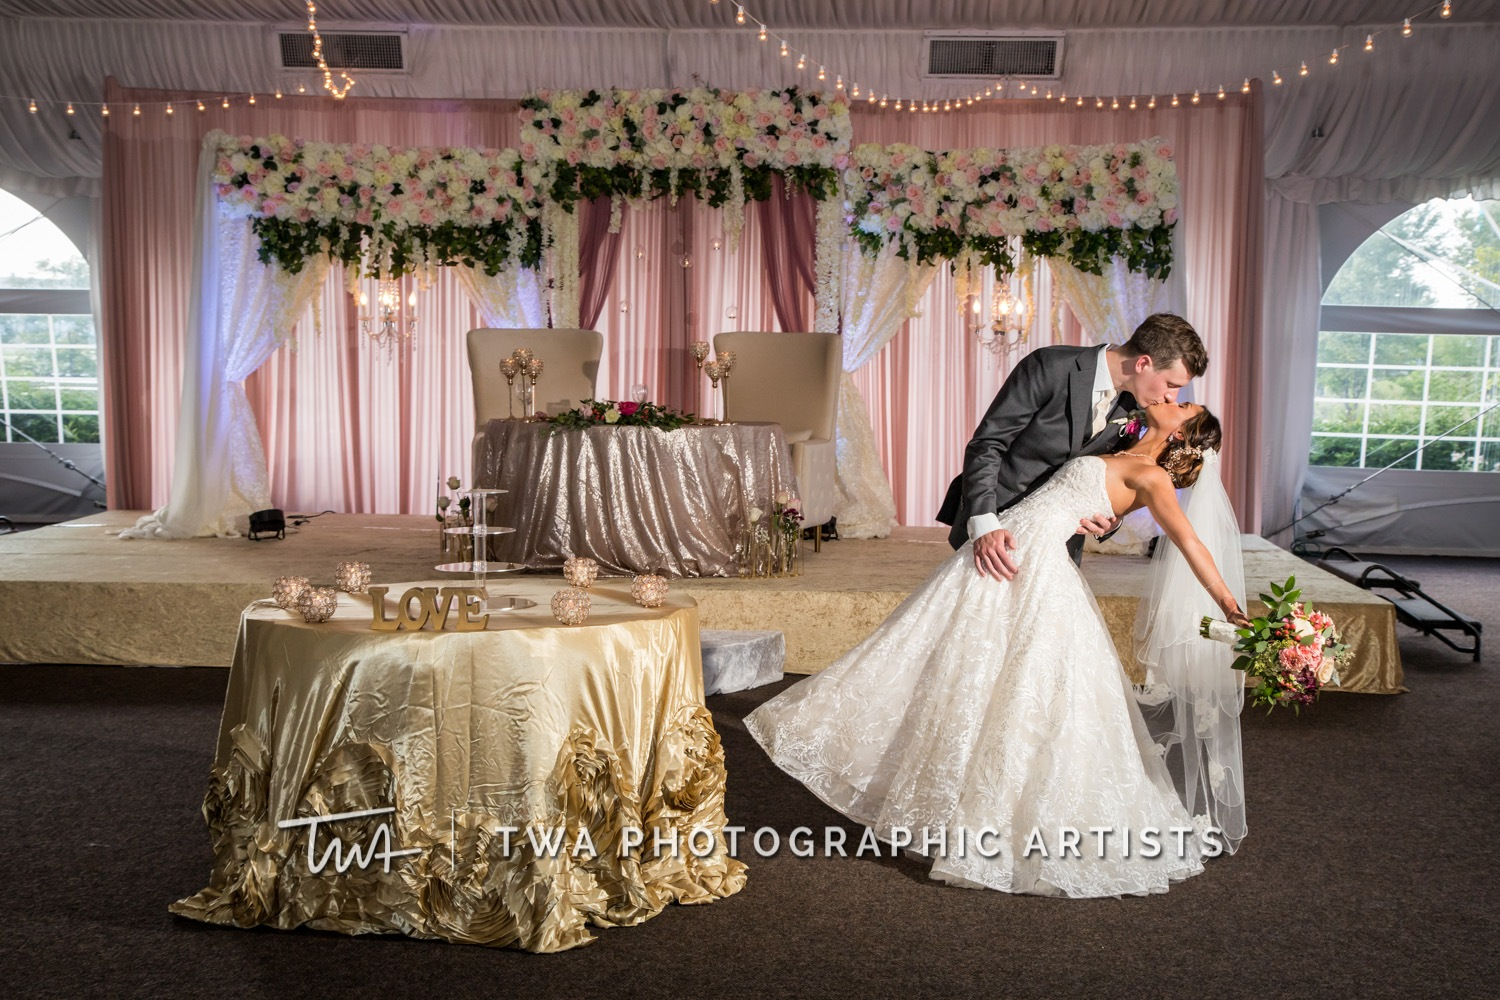 Chicago-Wedding-Photographer-TWA-Photographic-Artists-Shah_Billings_WM_TL-0774